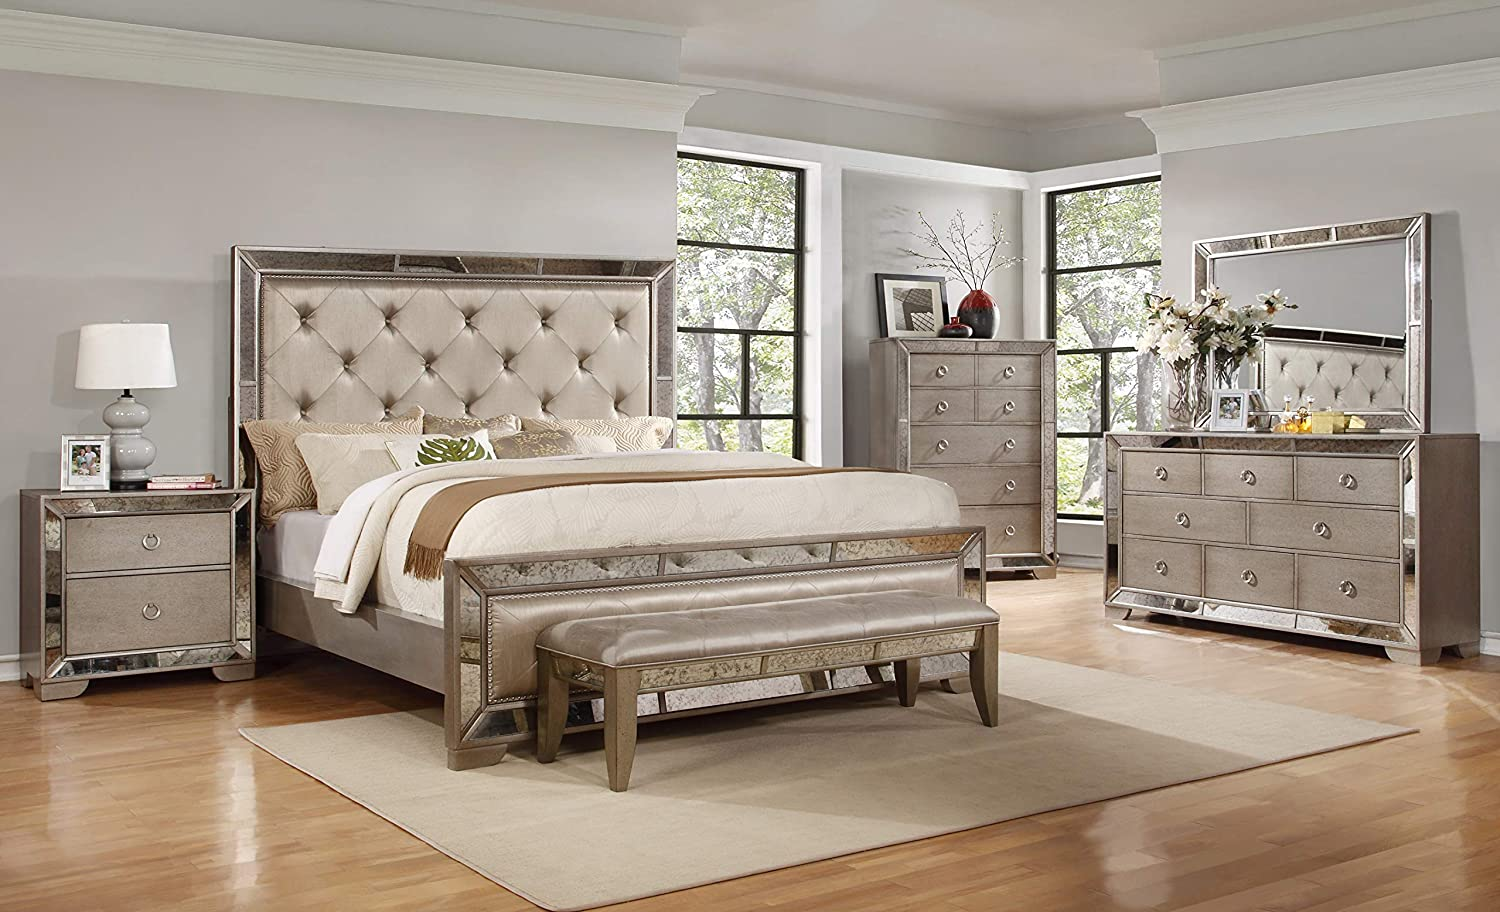 Best Master Furniture Ava Mirrored 6 Pcs Bedroom Set with 5 Drawer Chest, Queen, Silver/Bronze